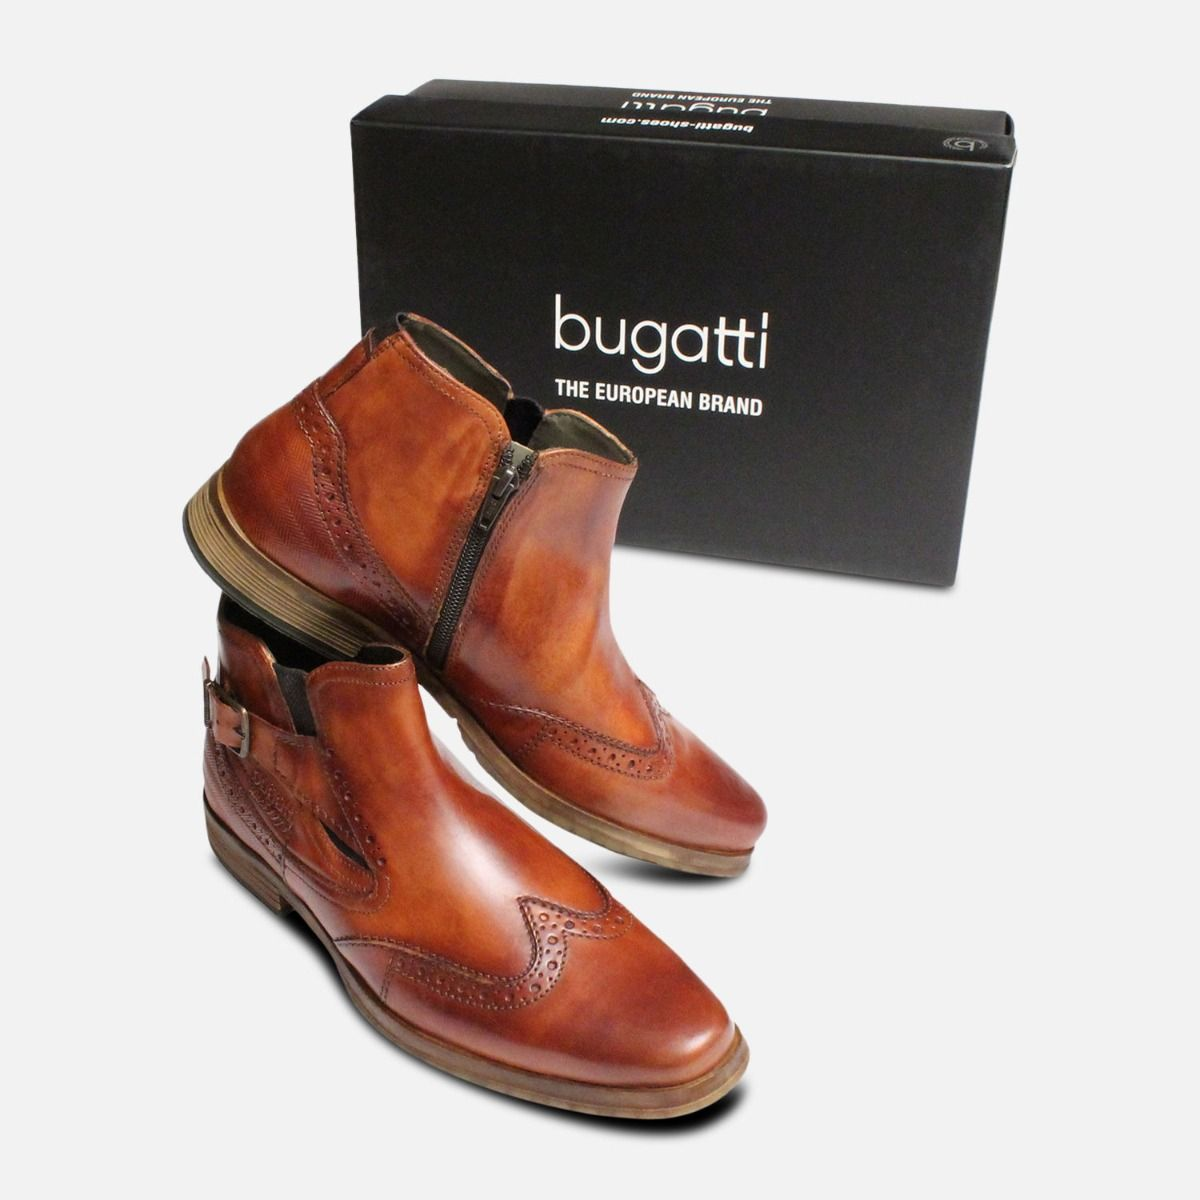 94104d2499e Regent Demi Boots in Antique Tan by Bugatti Shoes